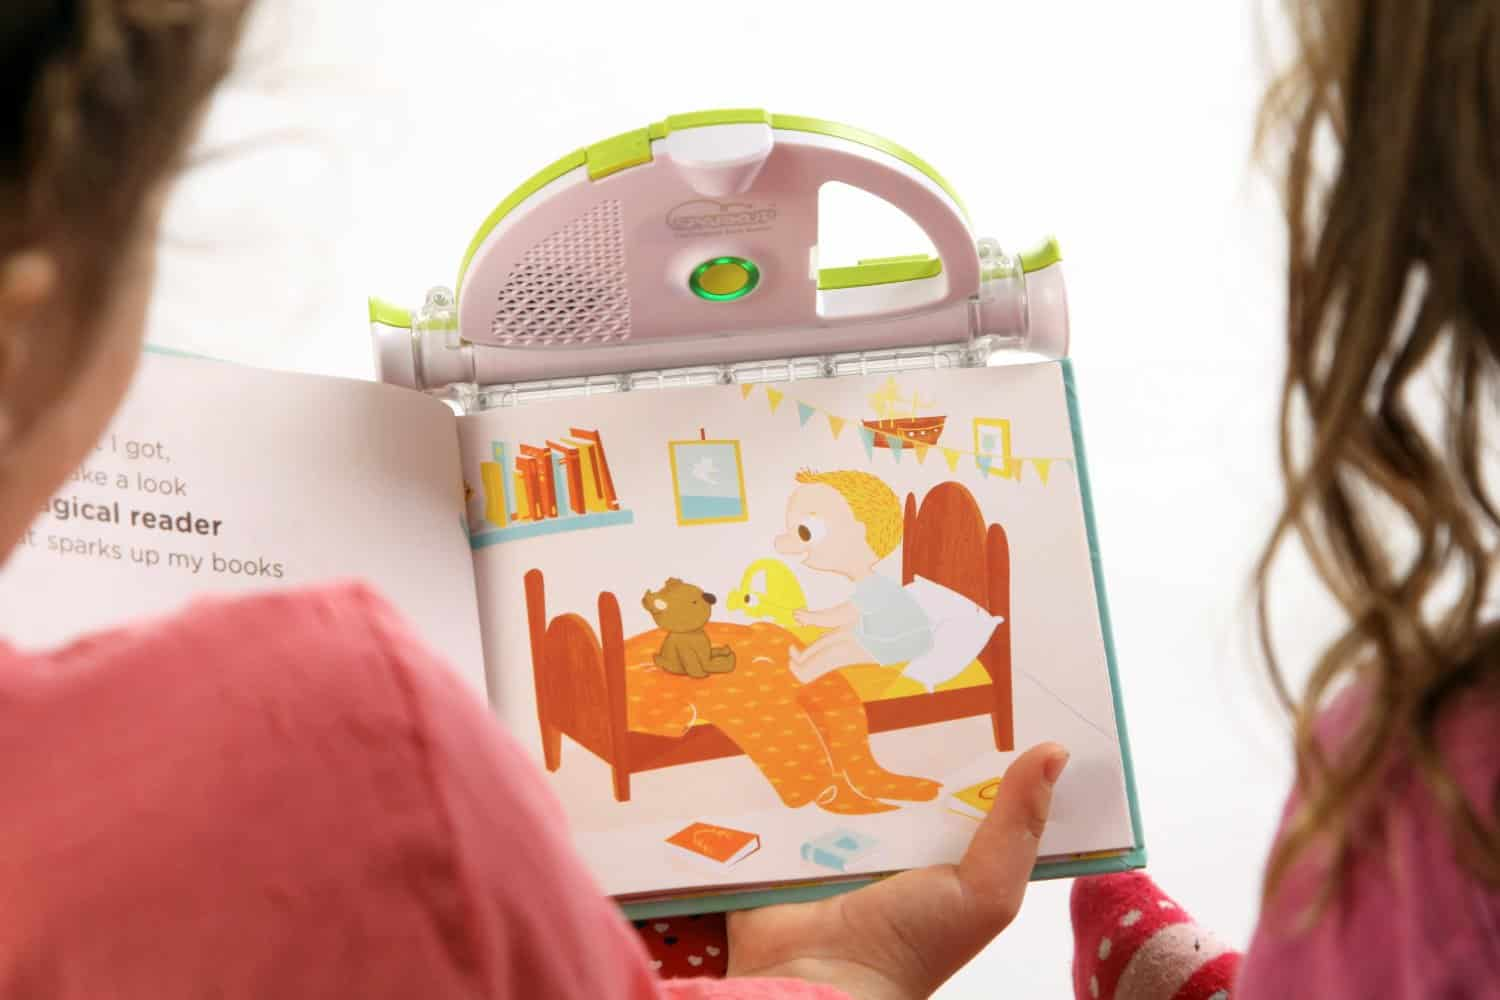 Sparkup The Magical Book Reader Record Parents Voice